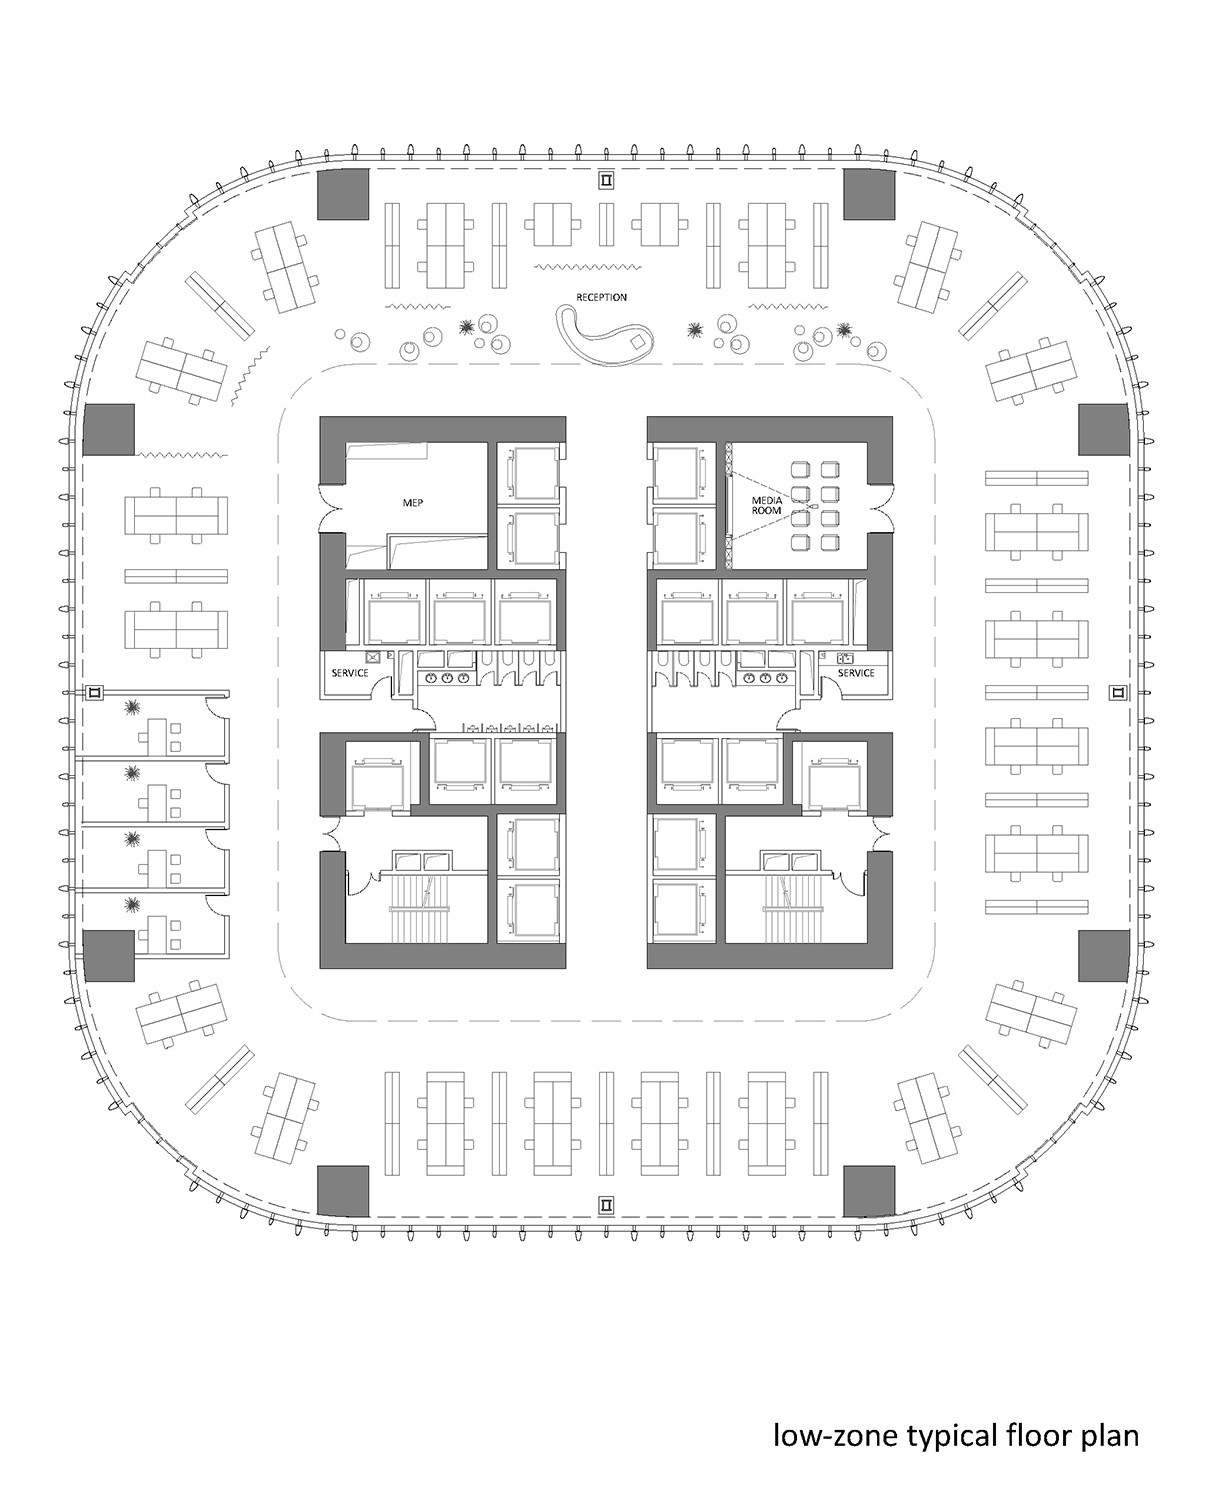 low-zone typical floor plan }